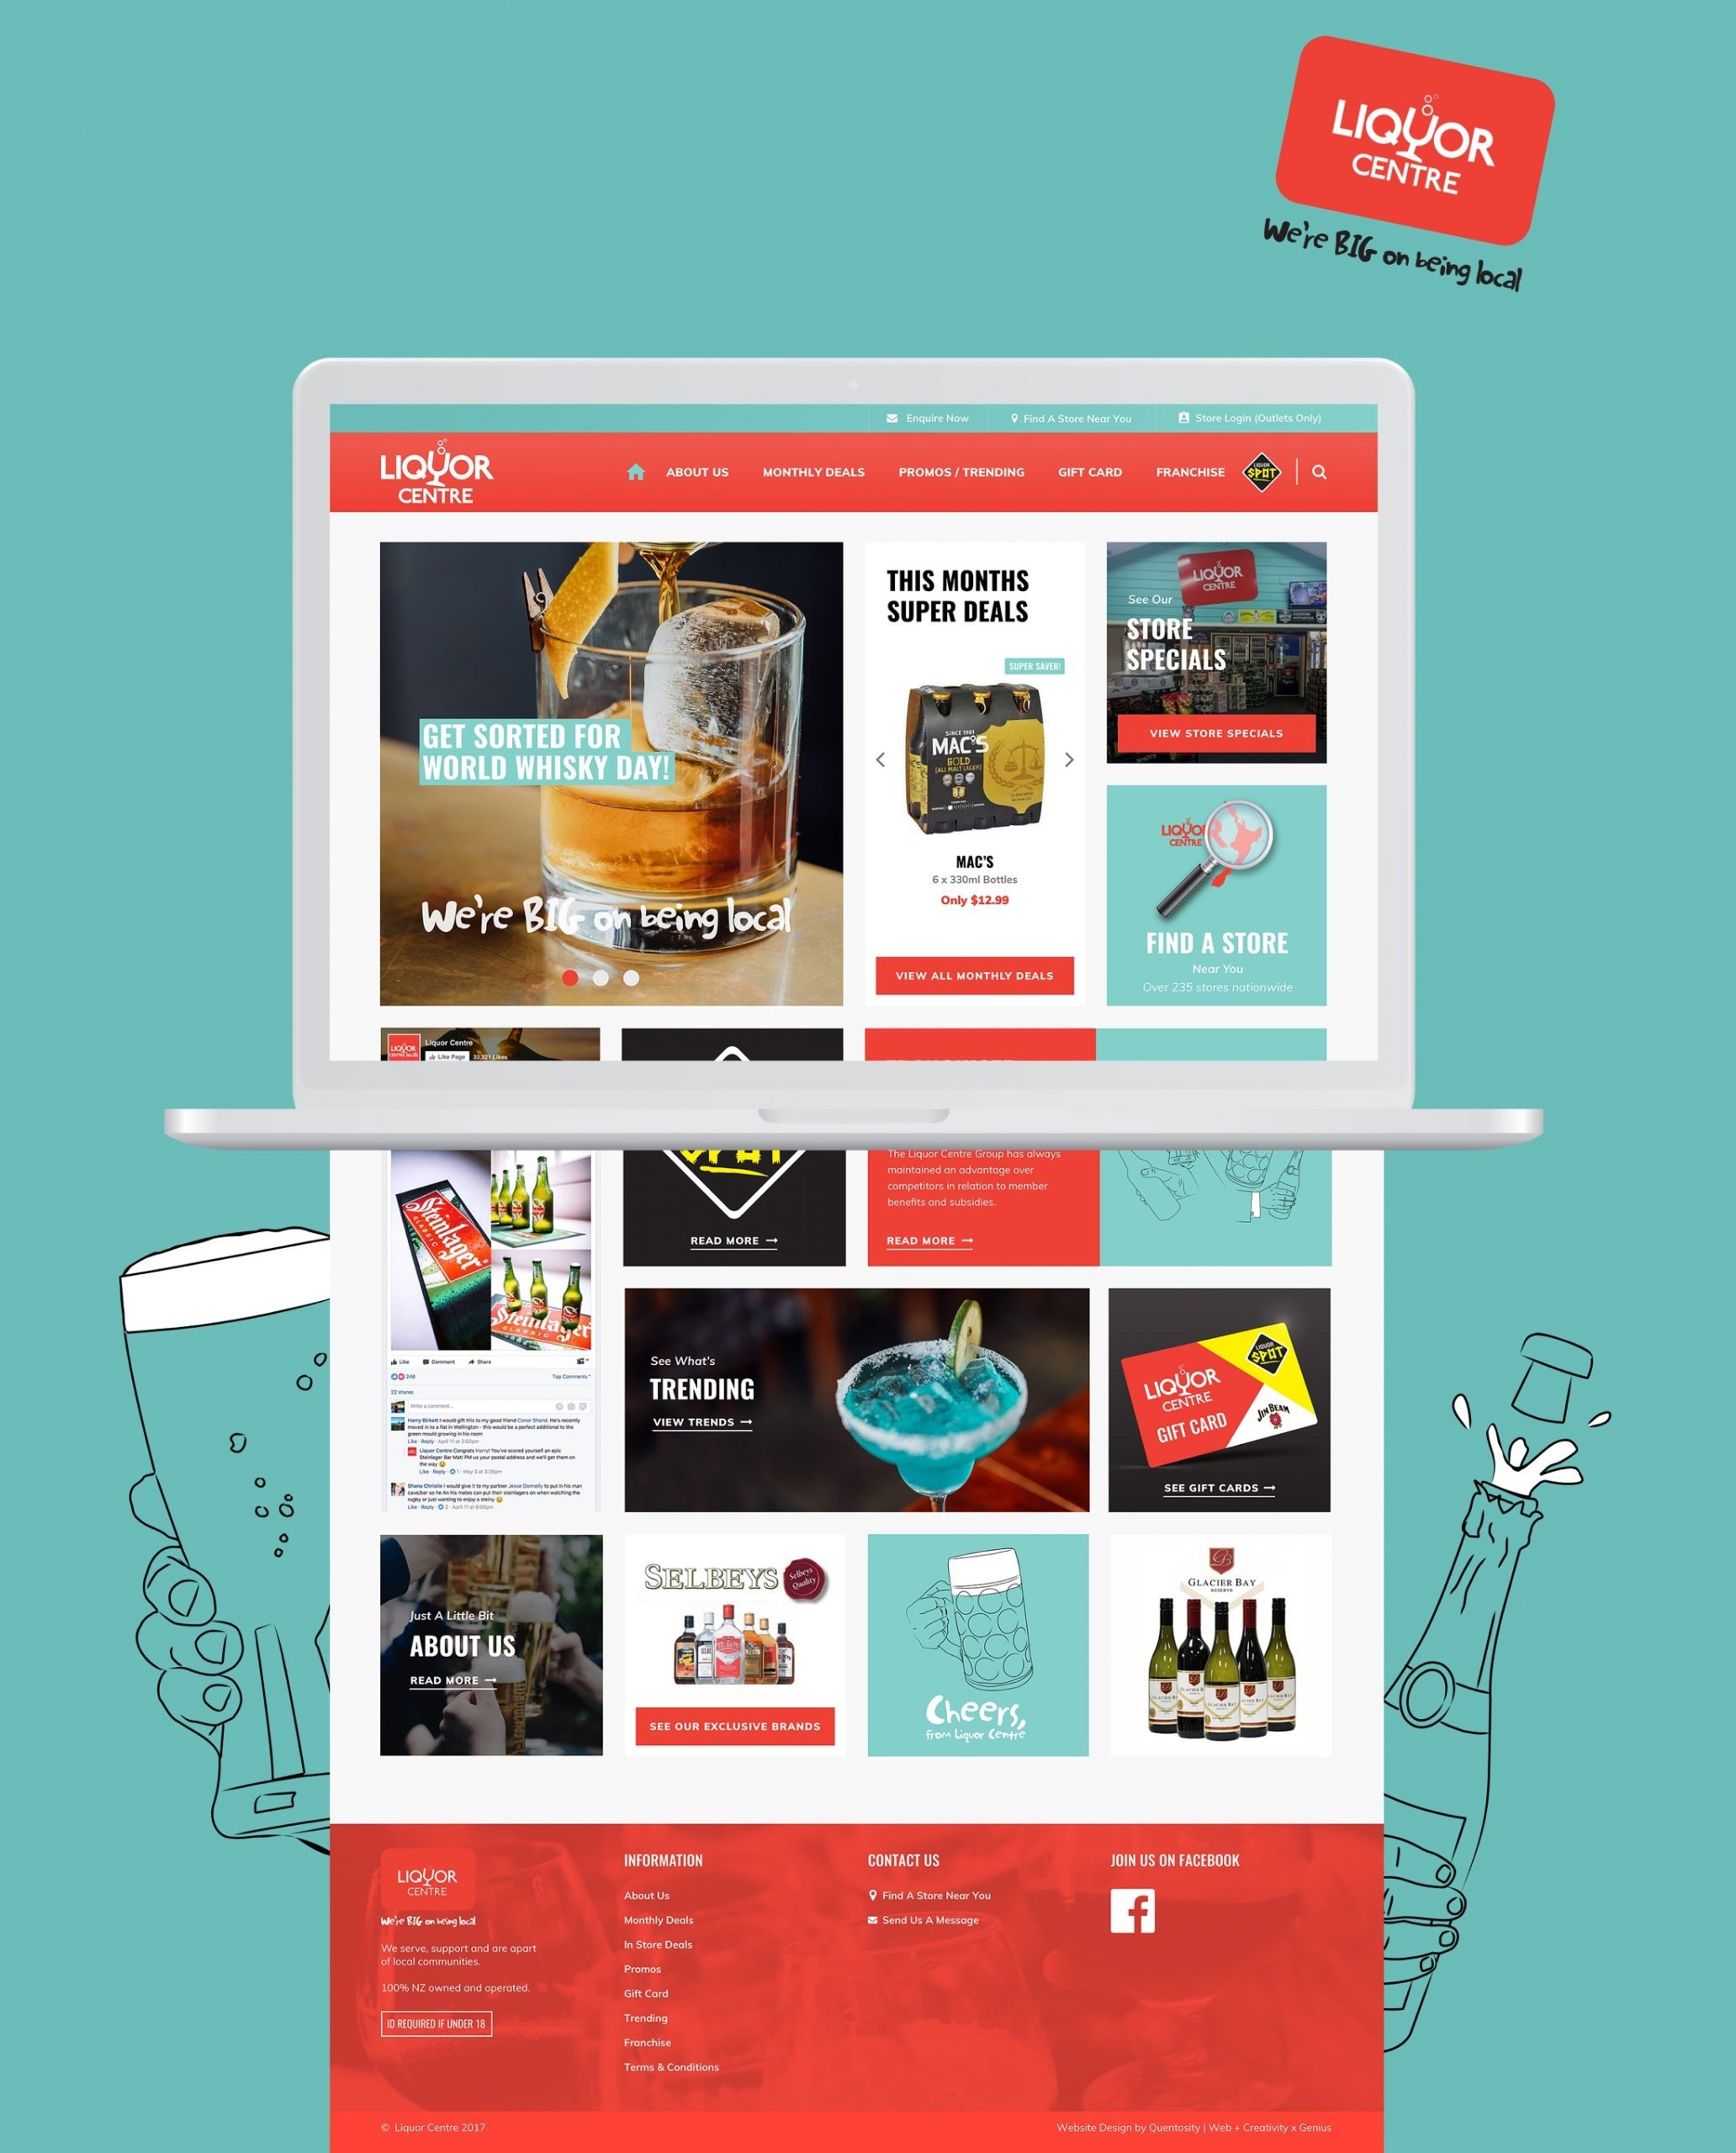 Website Re-design - The Liquor Centre